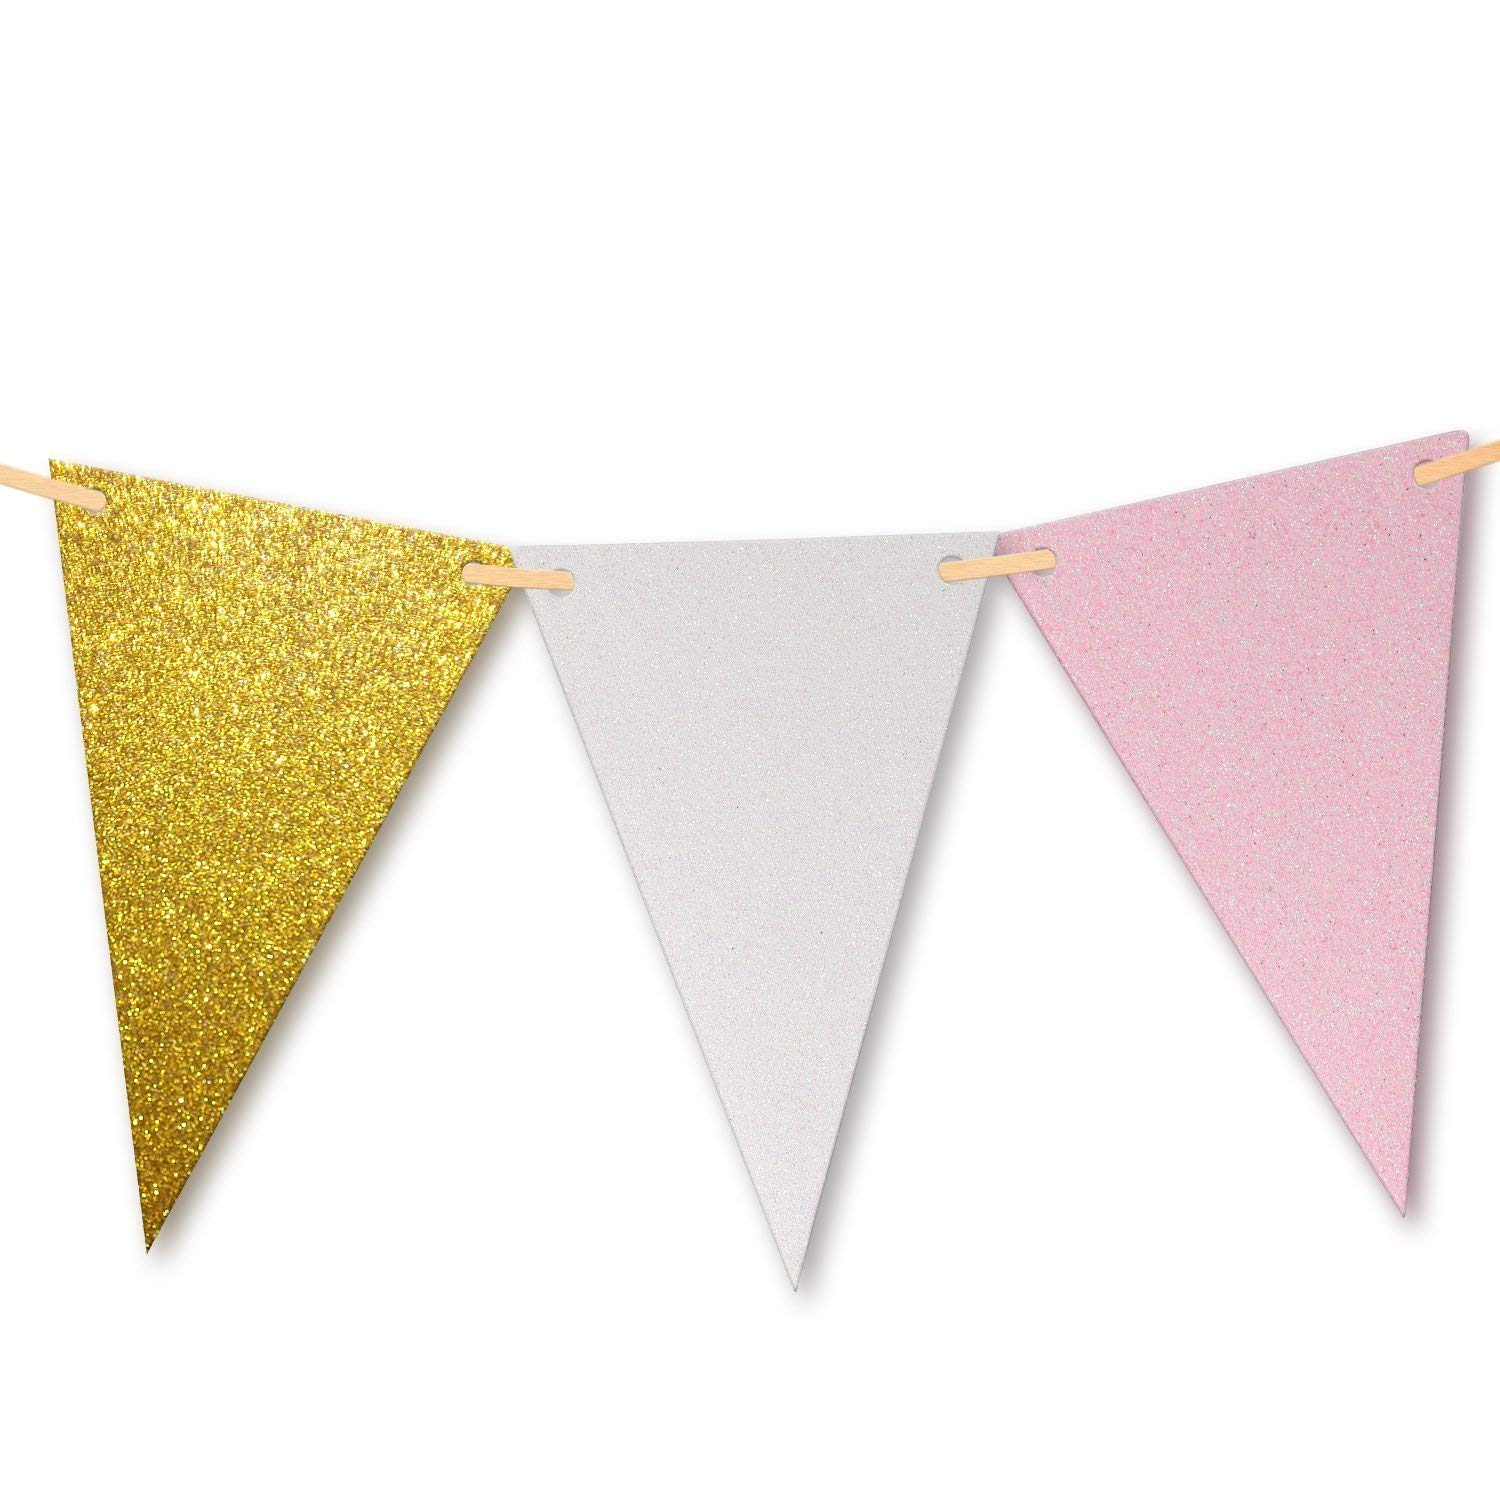 10 Feet Amazing Gold Glitter, Pink & White Triangle Flags Pennant Bunting Banner Paper Triangle Flag Wedding Bridal Shower Nursery Banner Special Occasion Birthday Party Banner 15 Flags - 1 Pack